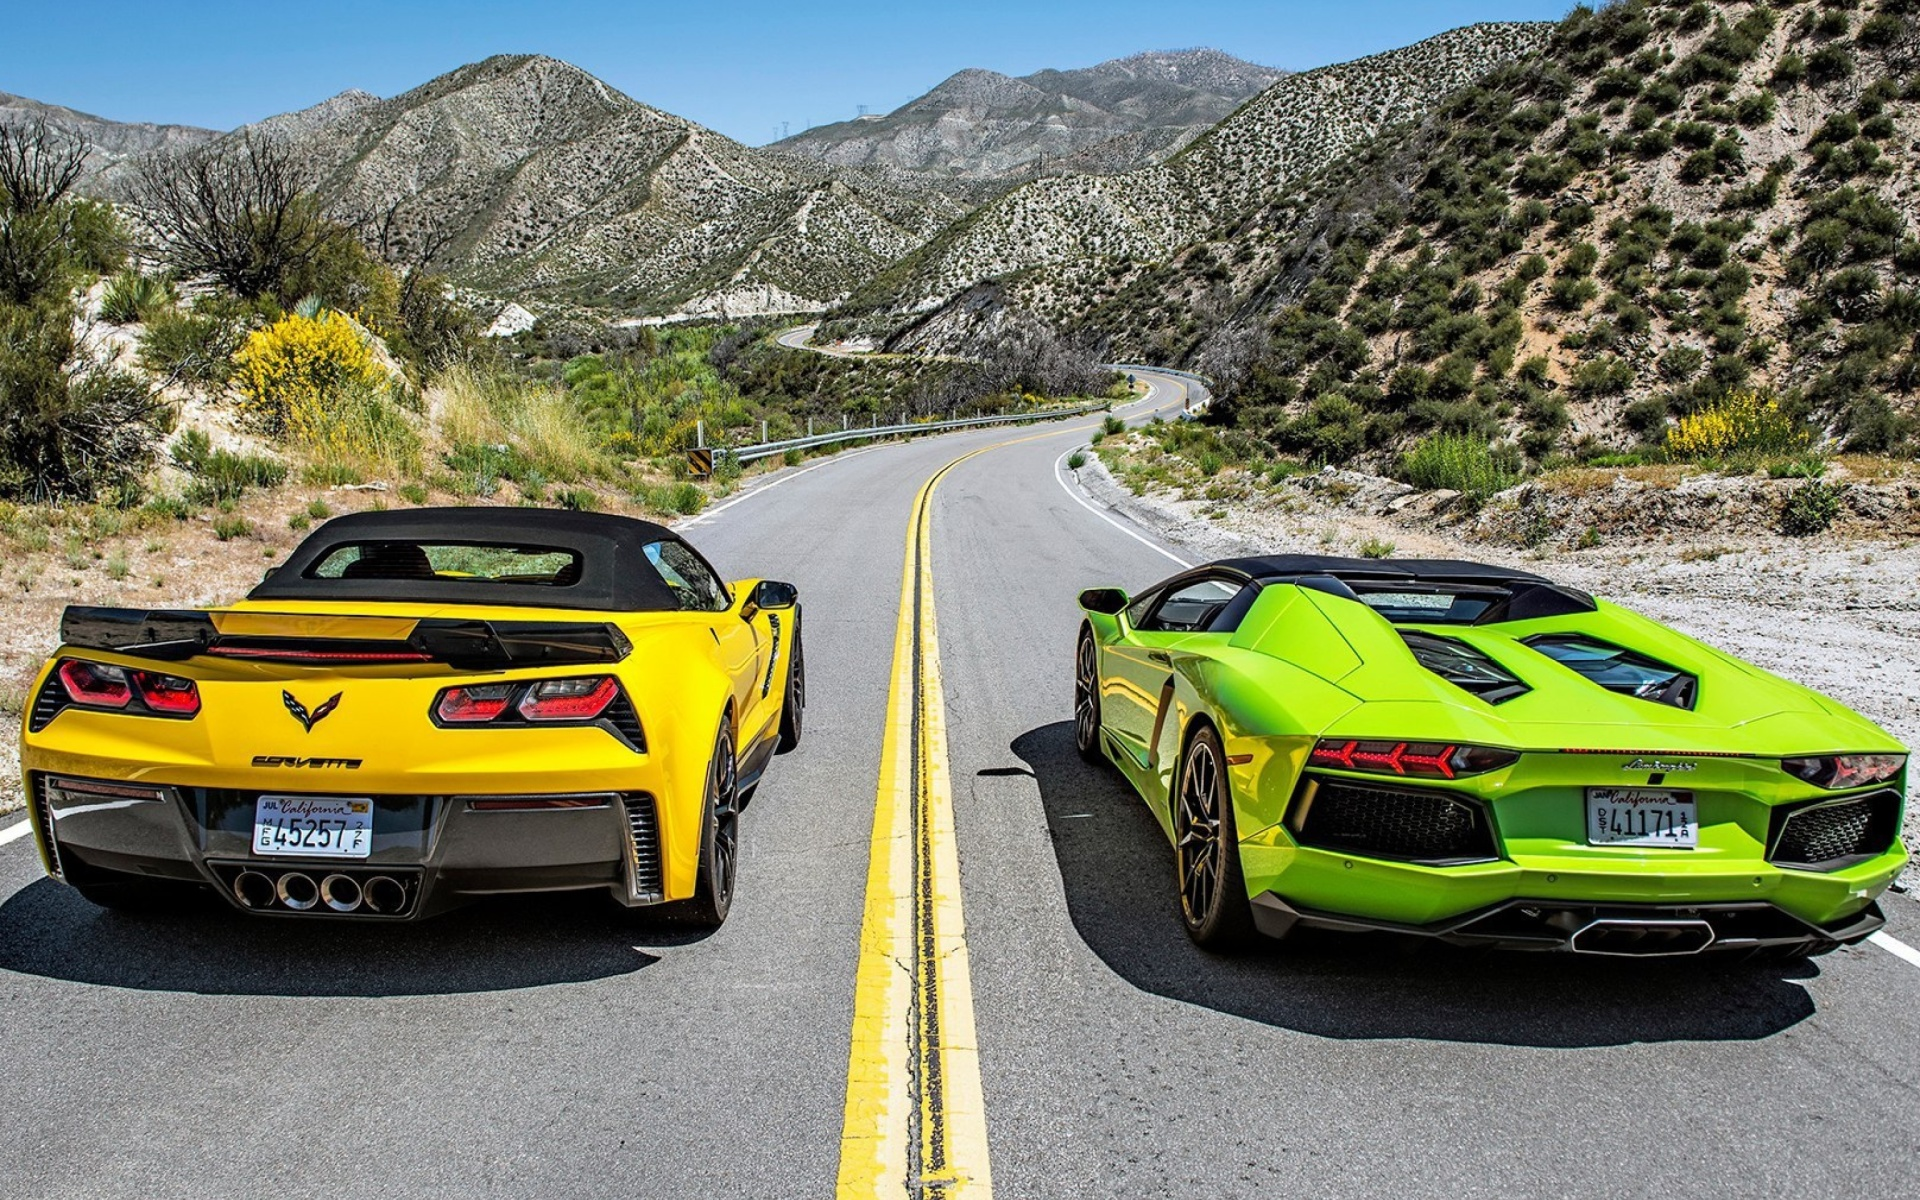 chevrolet corvette stingray vs lamborghini aventador wallpaper for widescreen. Black Bedroom Furniture Sets. Home Design Ideas